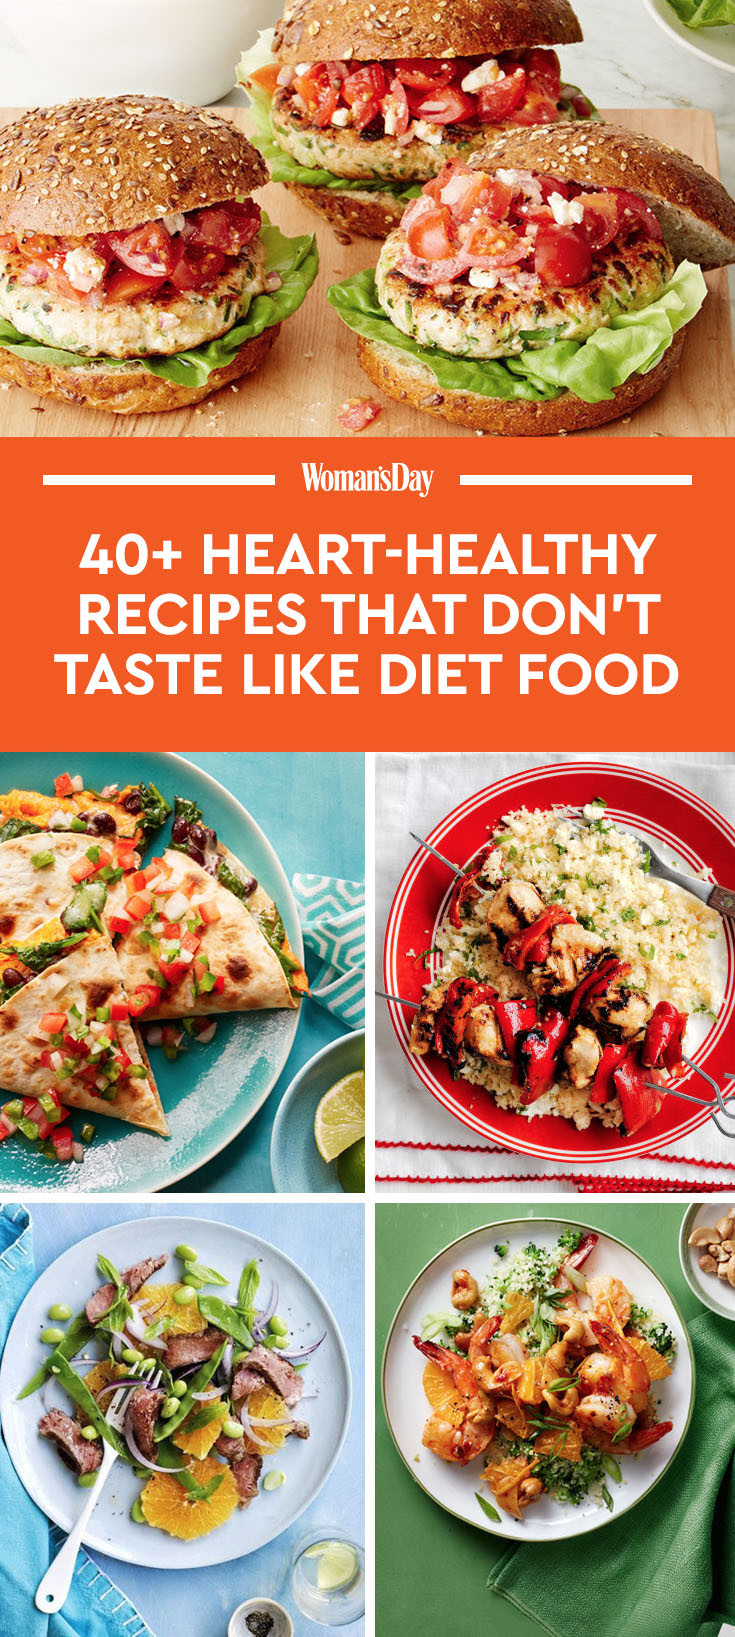 Heart Healthy Snack Recipes  55 Heart Healthy Dinner Recipes That Don t Taste Like Diet